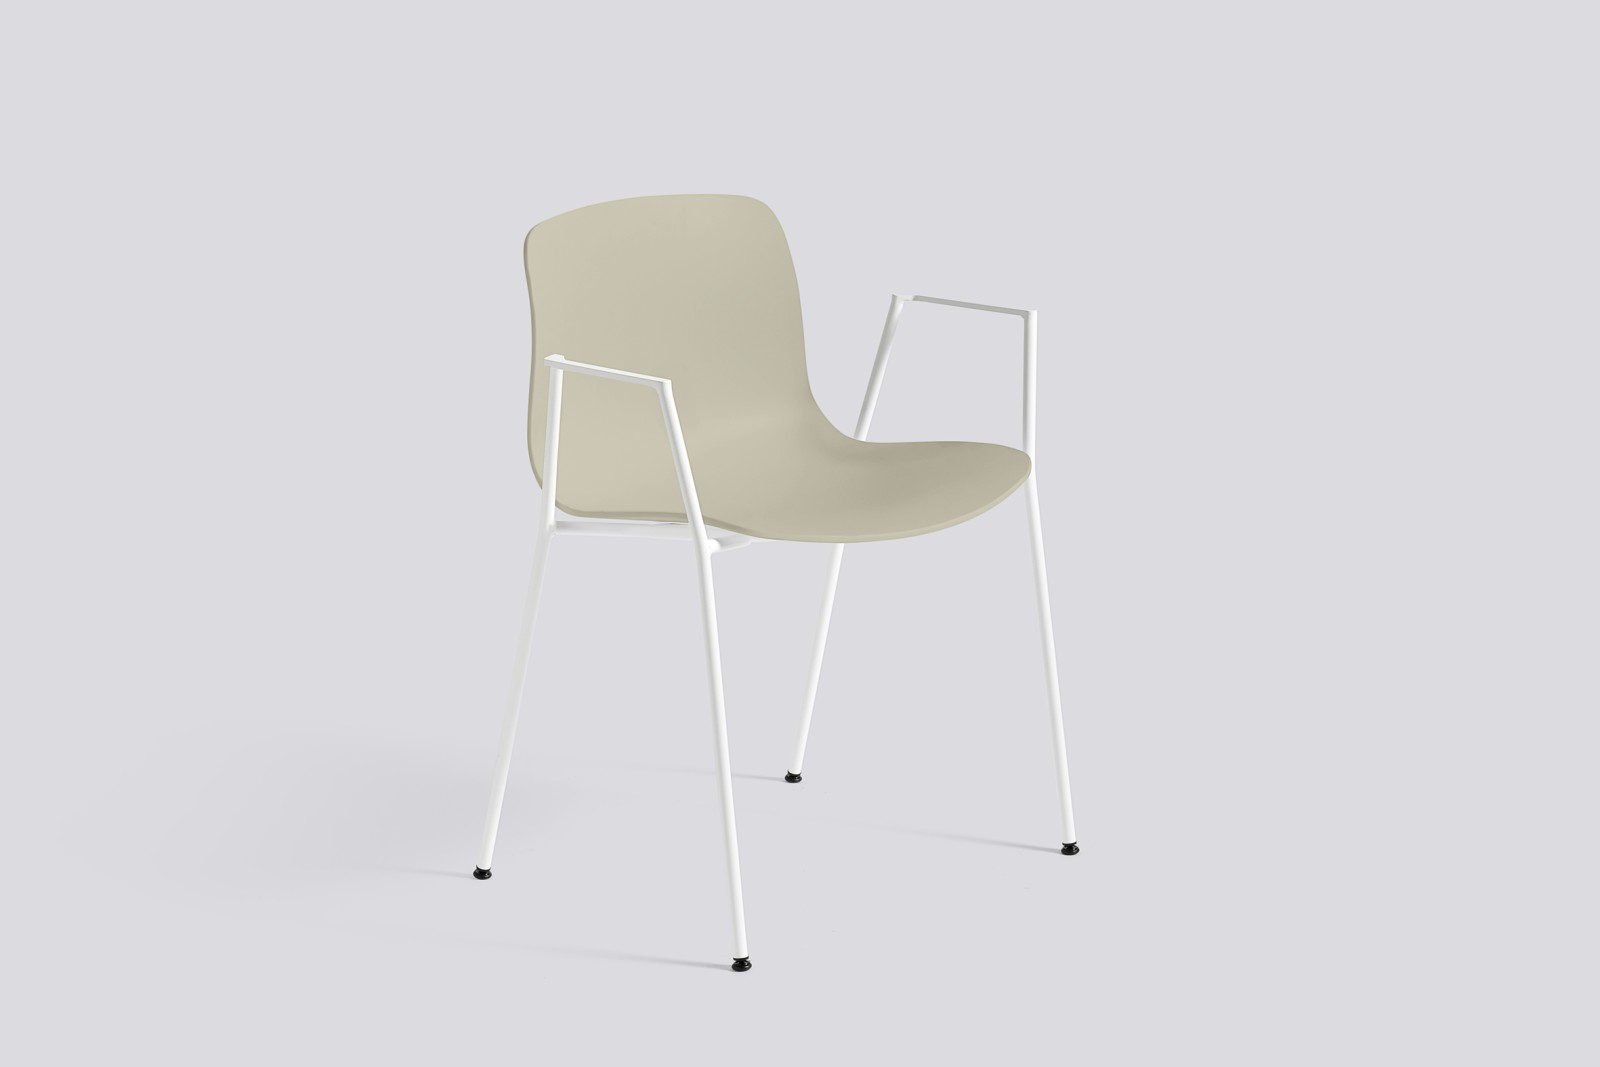 About A Chair AAC18 Pastel green, White Powder Coated Steel